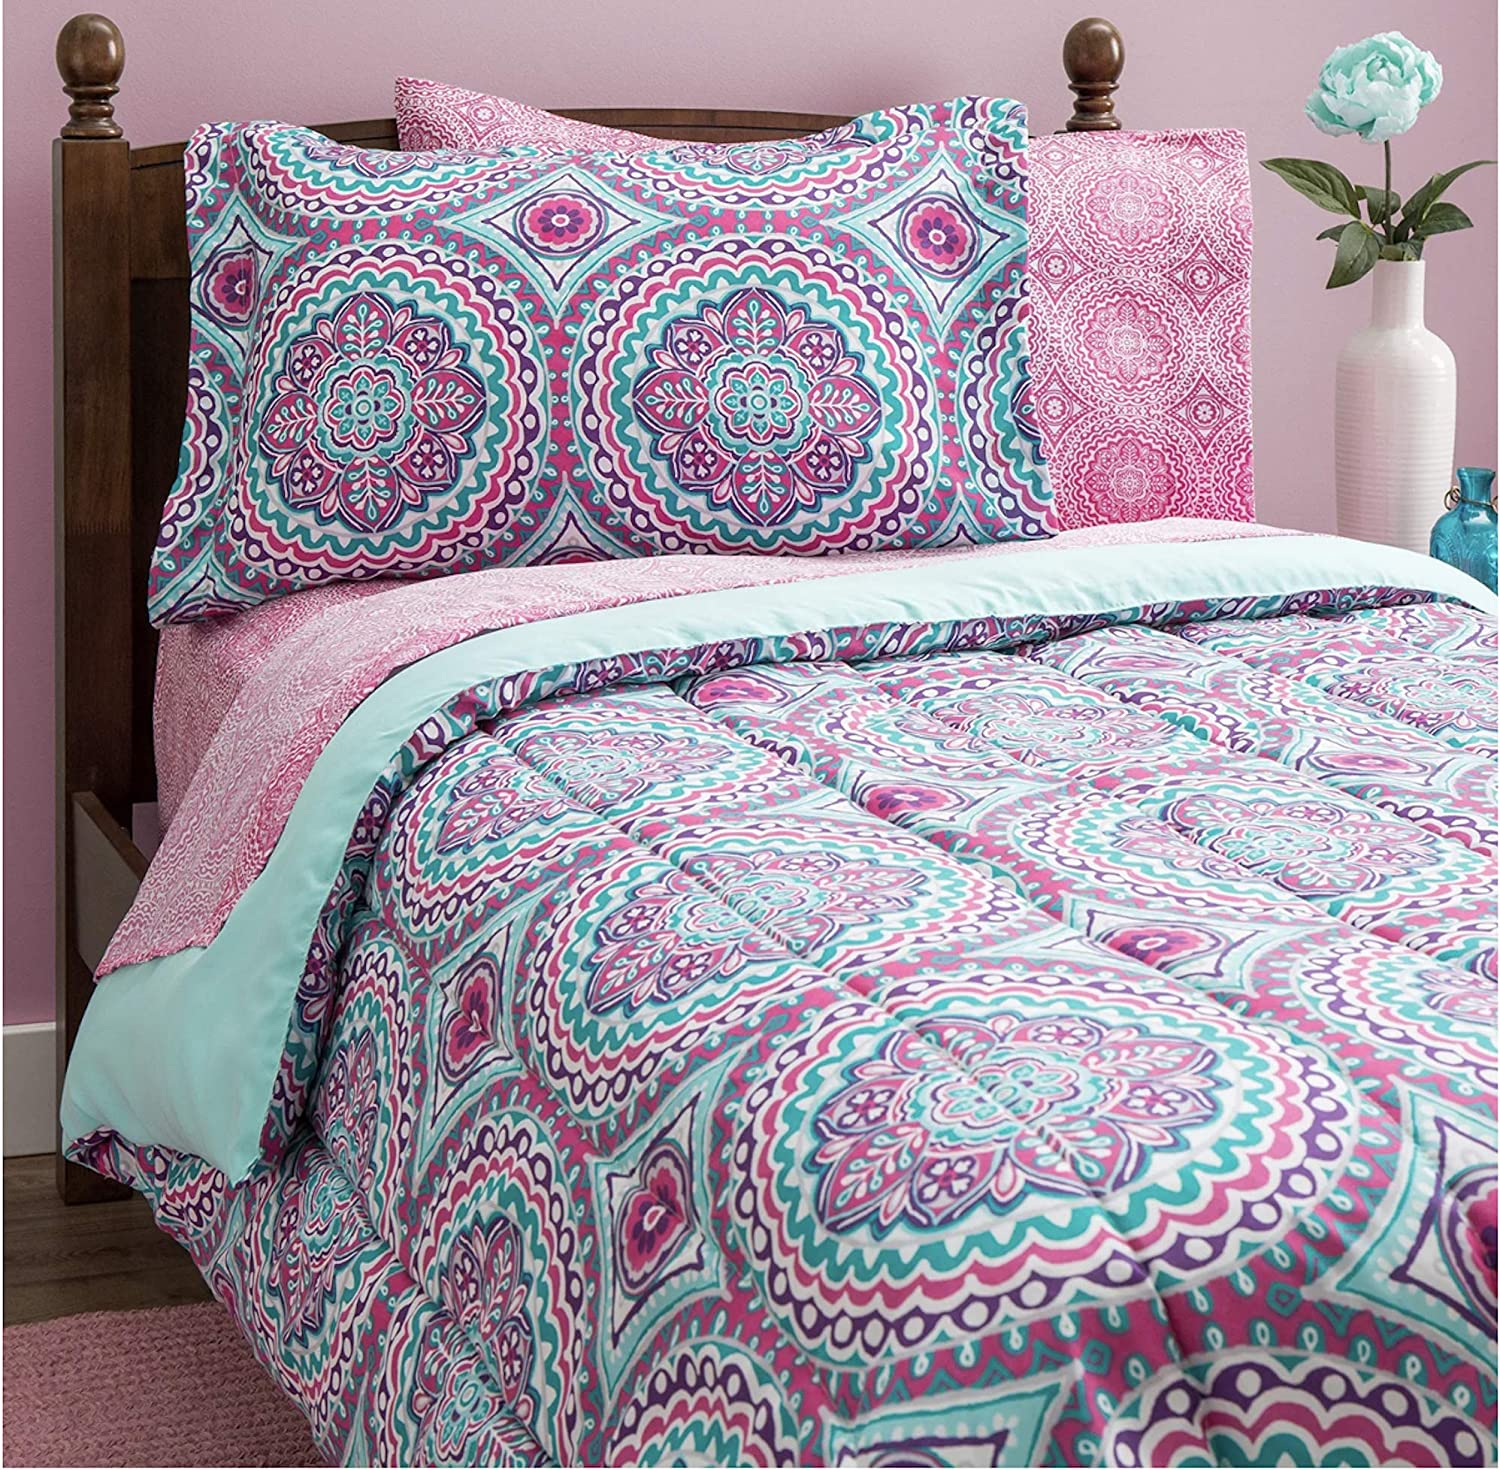 Design Studio Thalia 11-Piece Bag, Comforter with Sheets Medallion, Bohemian, Boho Chic, Microfiber, Teen, Girls, Bedding,Full, Purple/Aqua